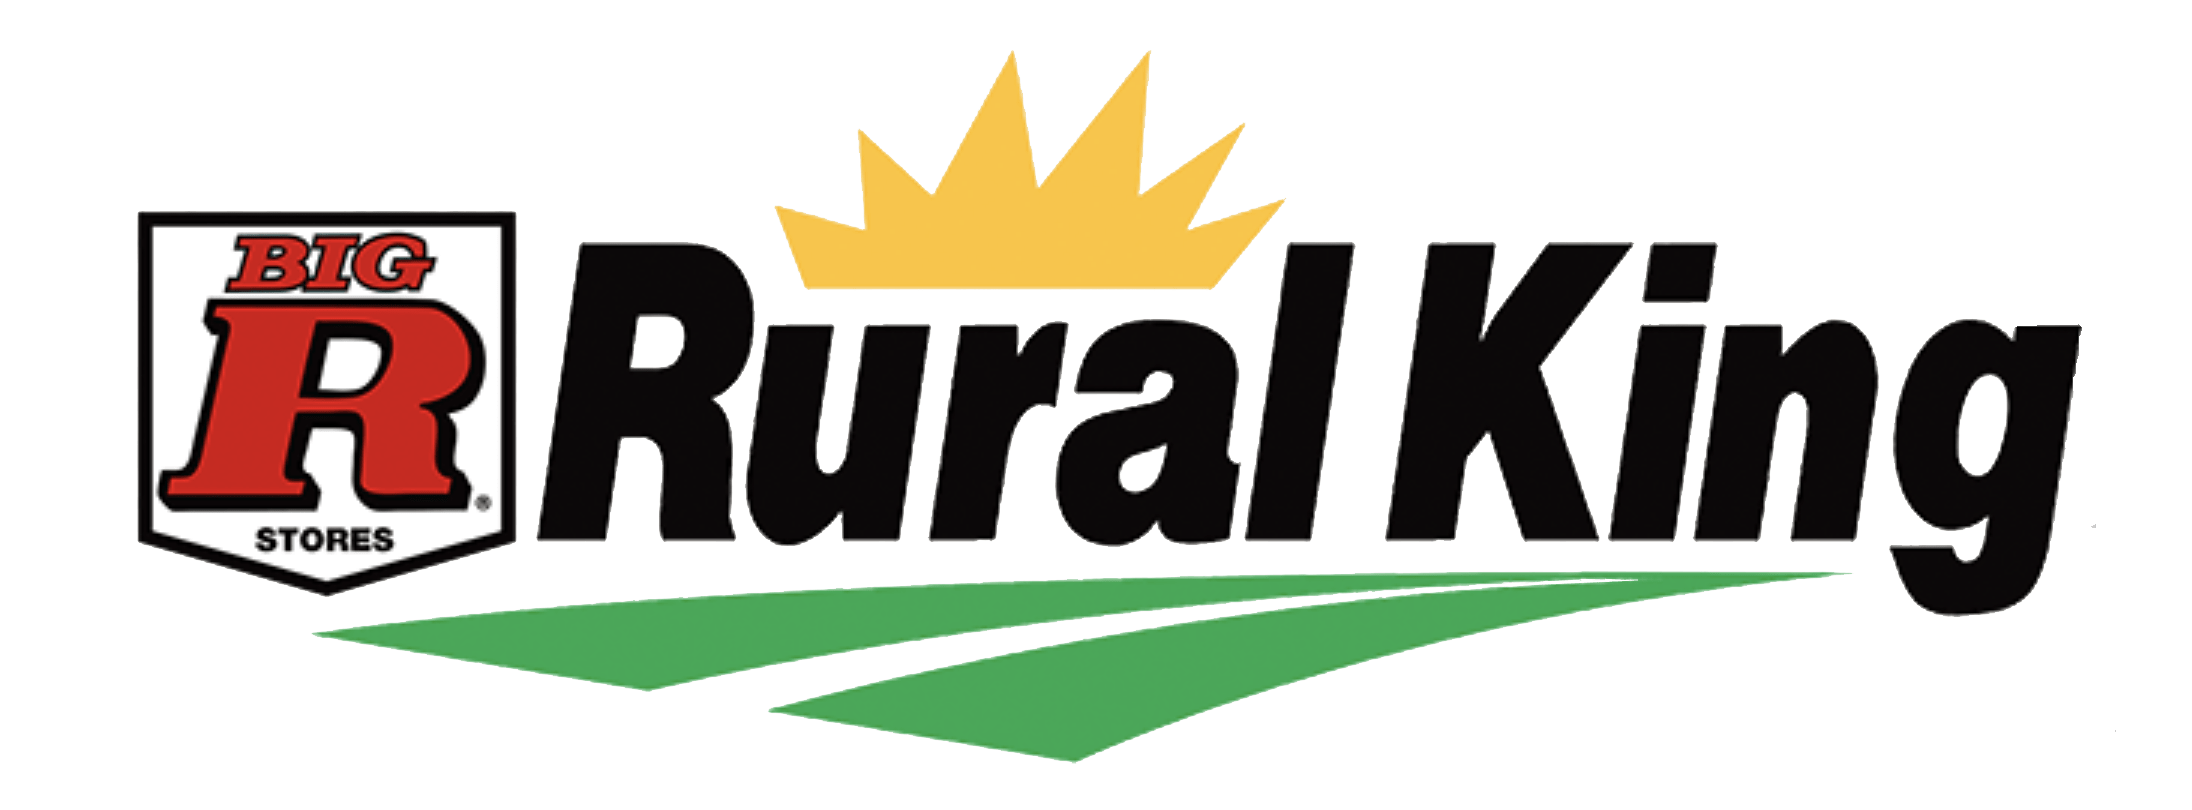 big r rural king